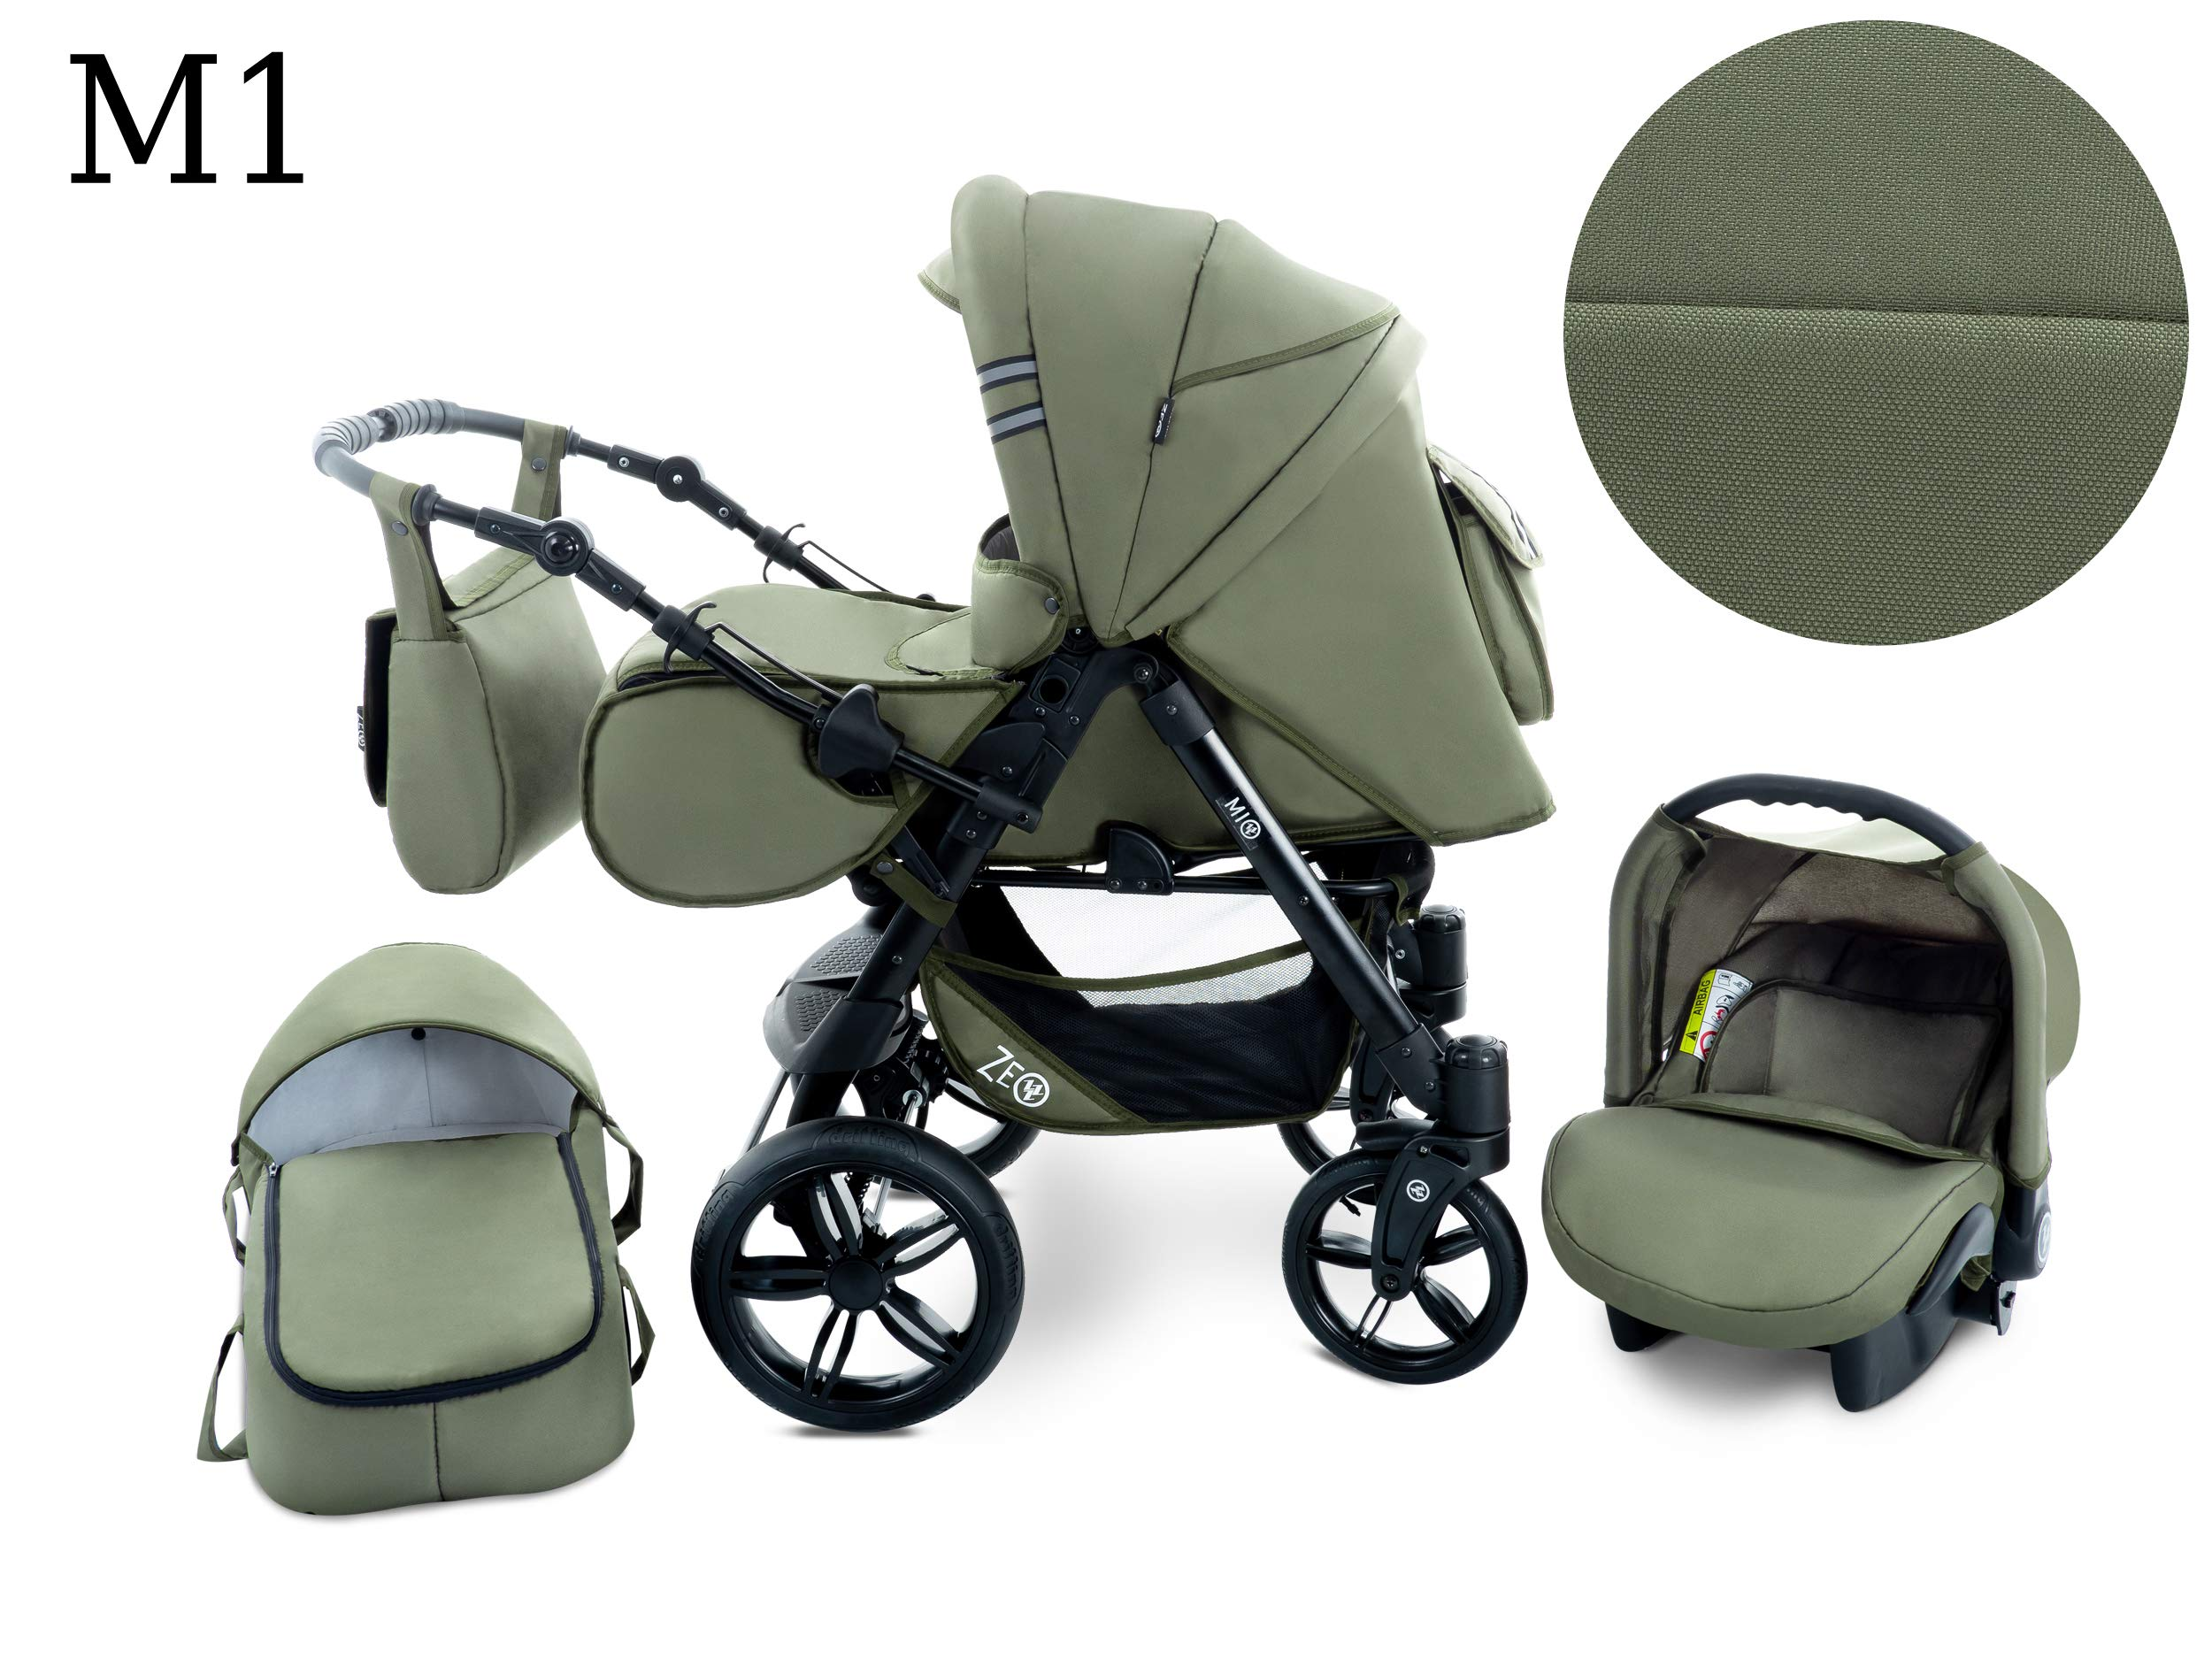 Baby Pram Zeo Mio 3in1 Set - All You Need! carrycot Gondola Buggy Sport Part Pushchair car seat (M1)  3 in 1 combination stroller complete set, with reversible handle to the buggy, child car seat or baby carriage Has 360 ° swiveling wheels, two-fold suspension, four-stage backrest, five-position adjustable footrest and a five-point safety belt The stroller can be easily converted into other functions and easy to transport 2